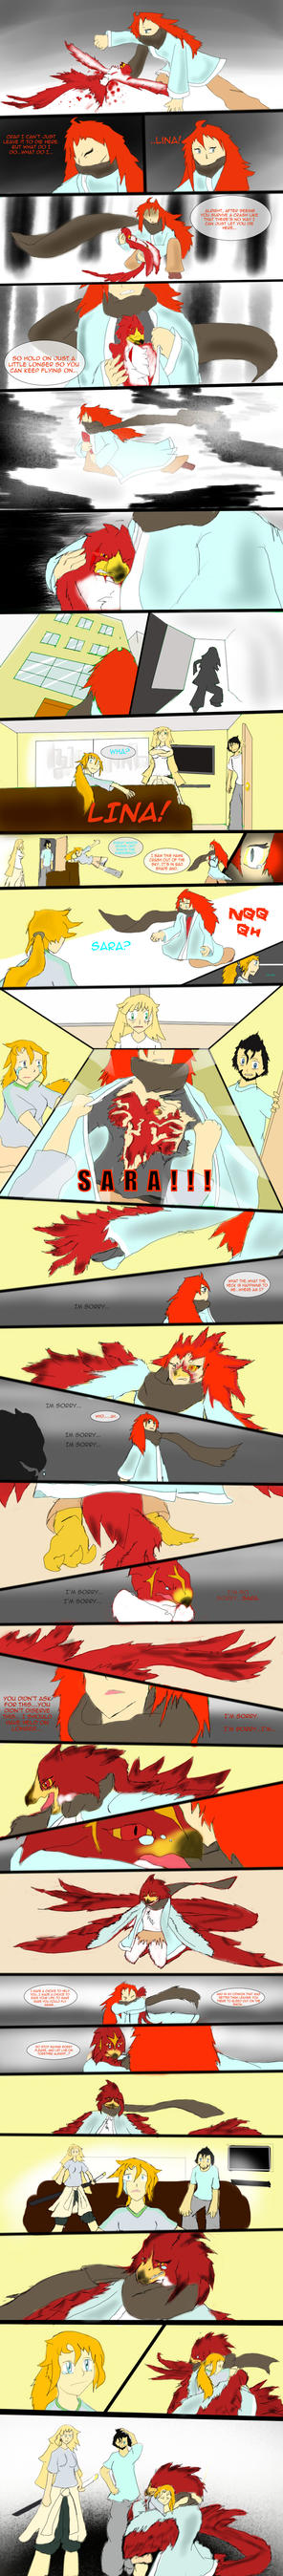 ZP - The Change, Sara - part 2 by teriax